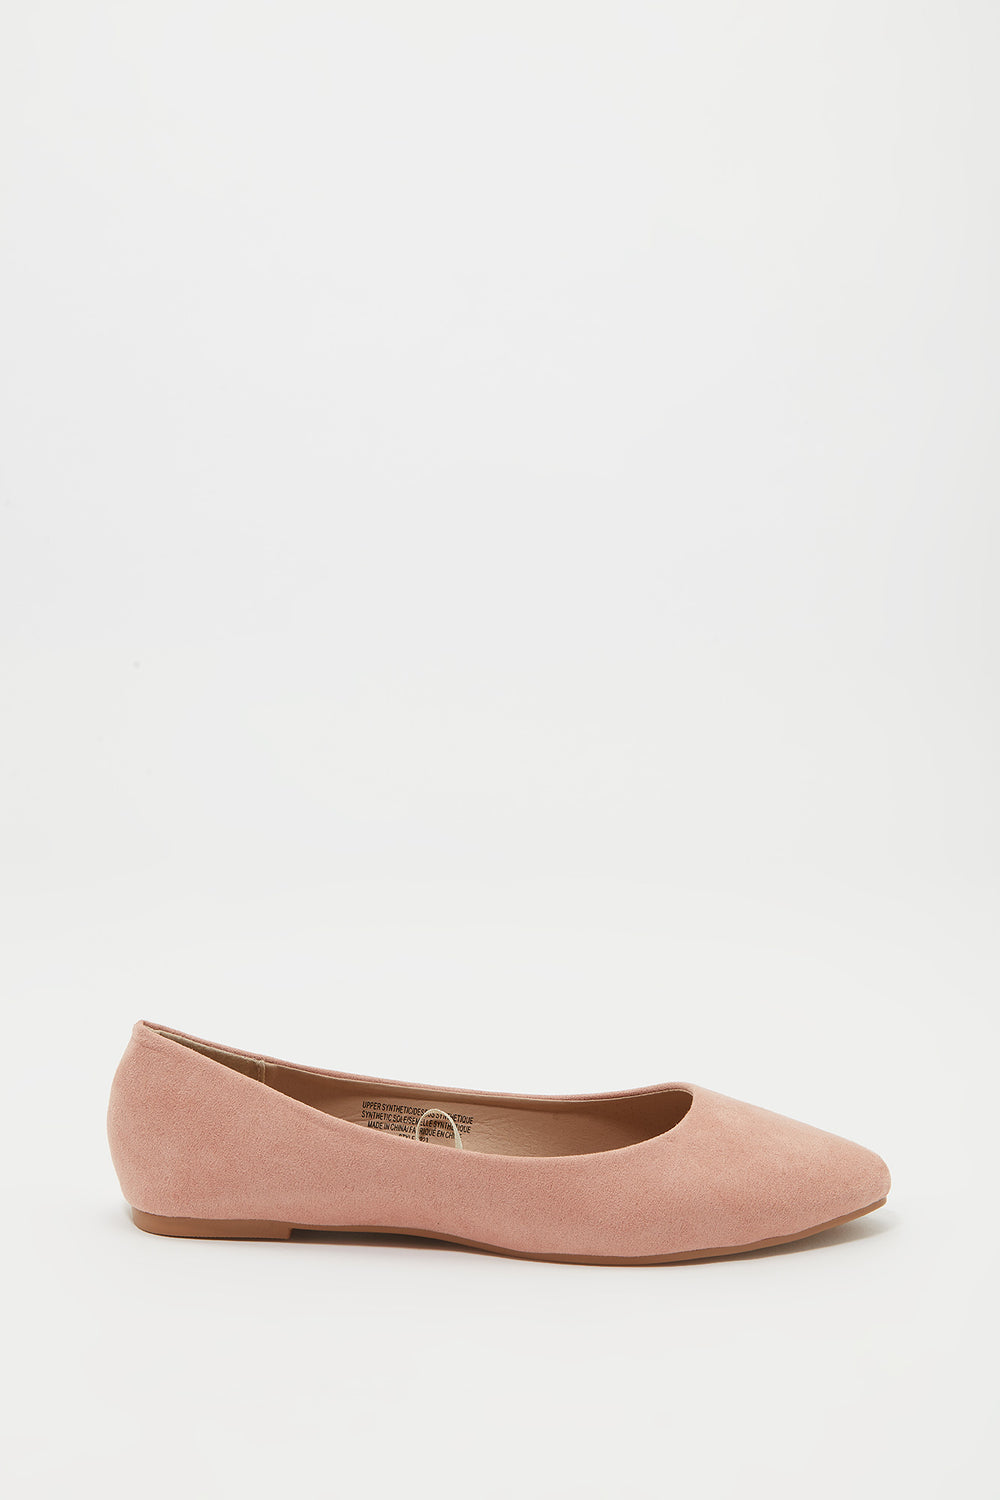 Ballerines pointues Rose pale